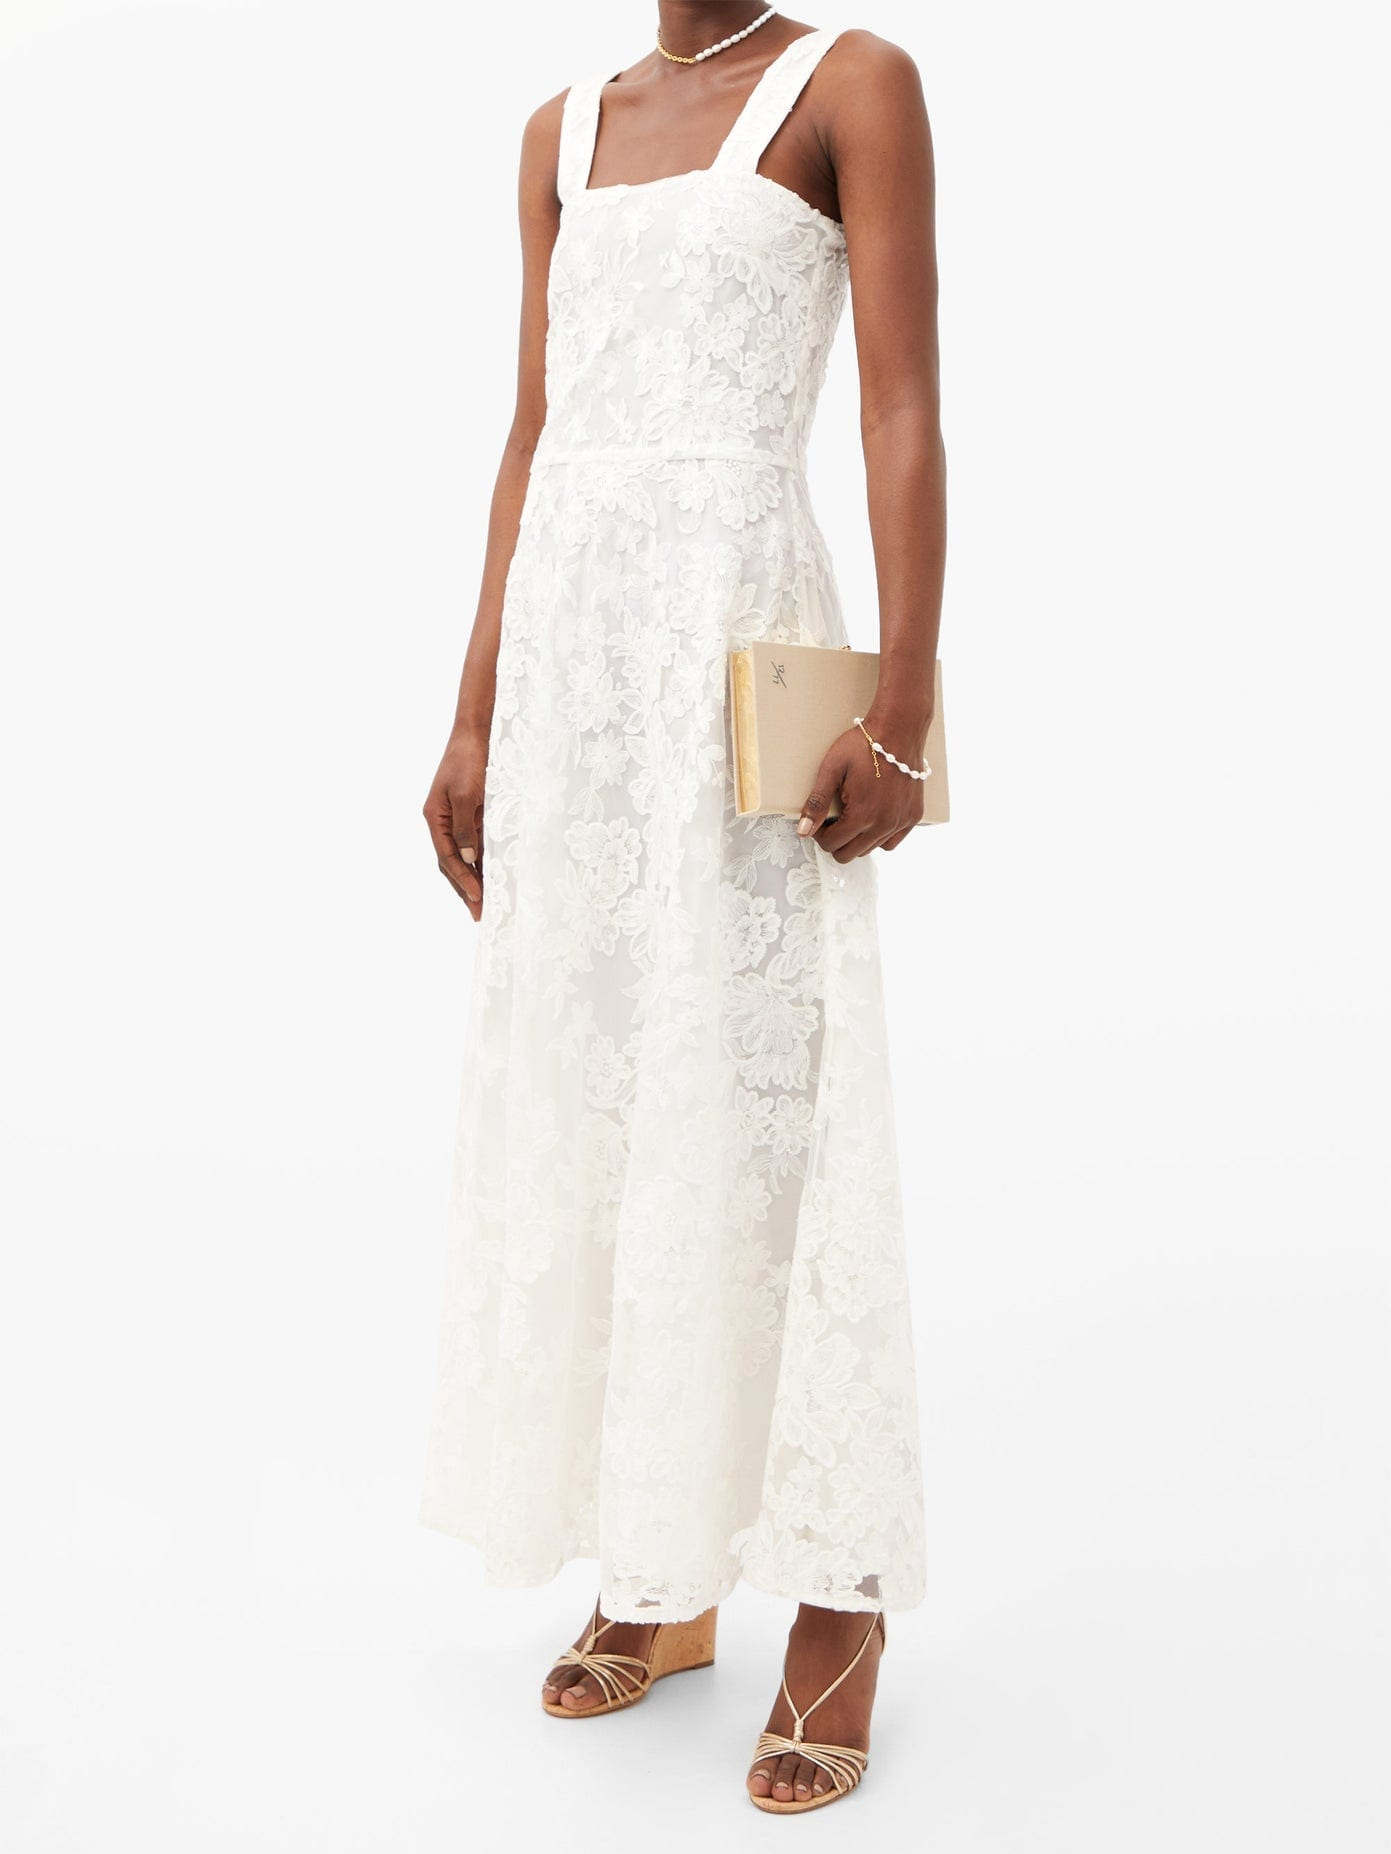 GIOIA BINI Lucinda Square-neck Macramé-lace Maxi Dress